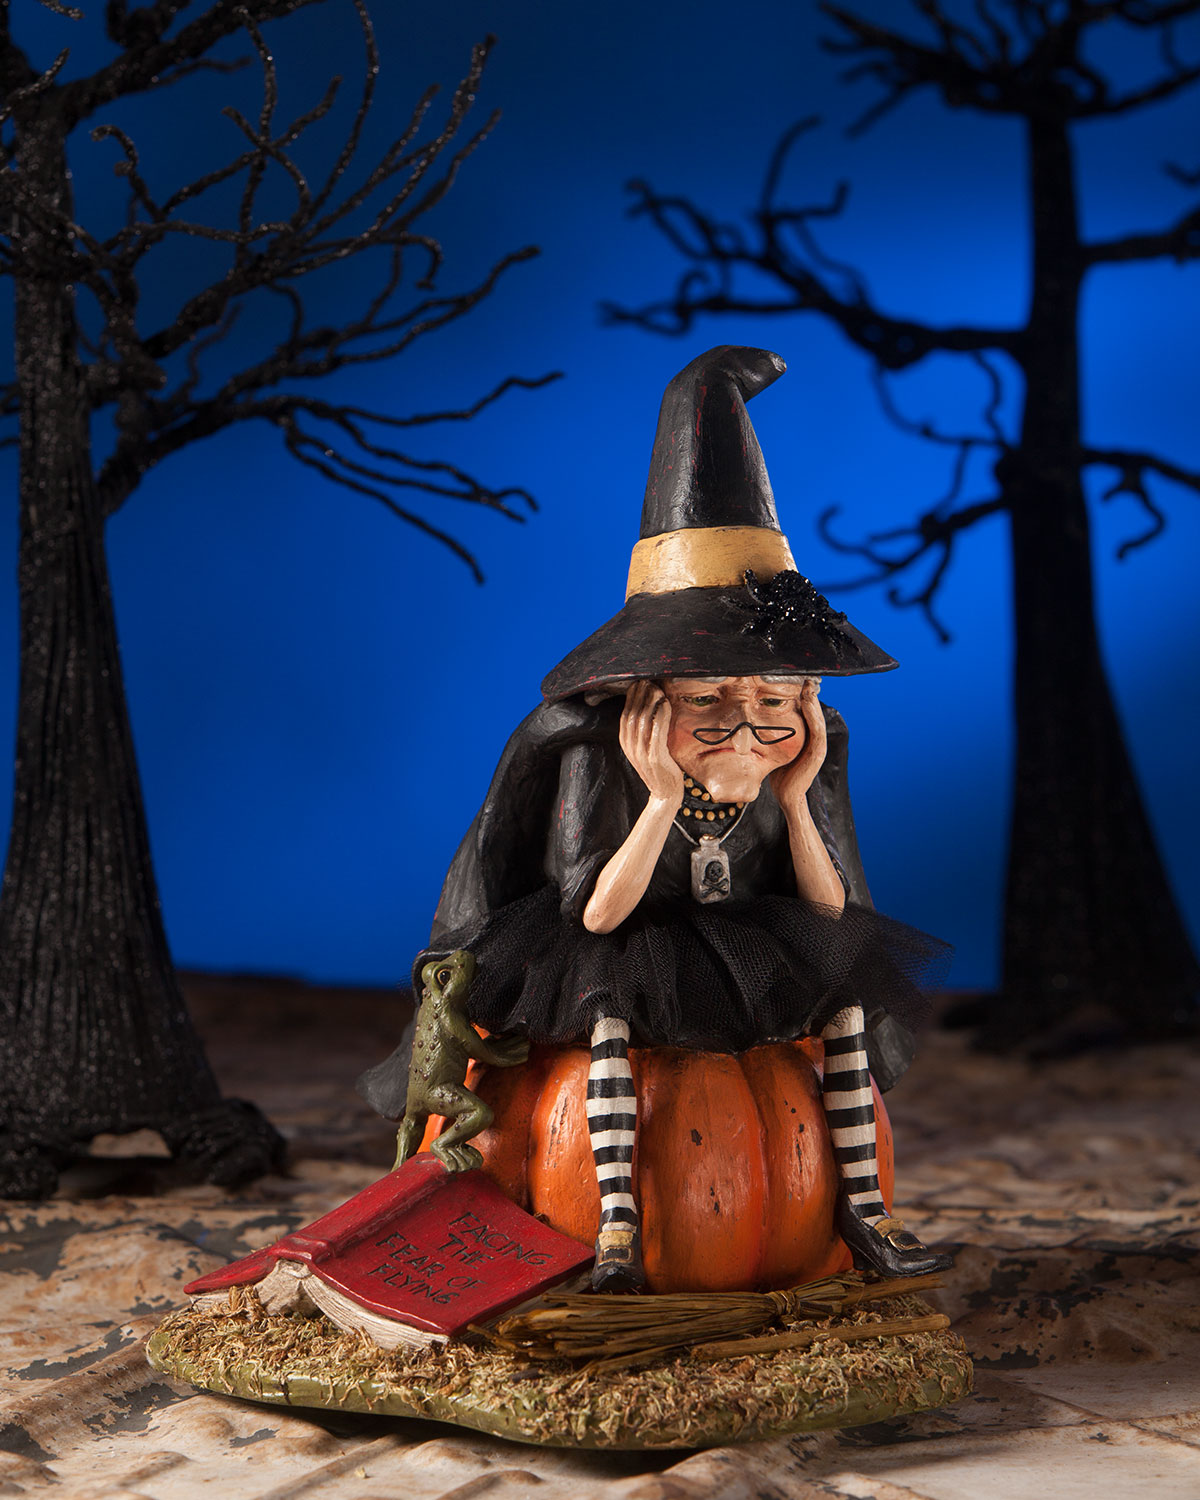 bethany lowe fear of flying witch halloween figure | neiman marcus